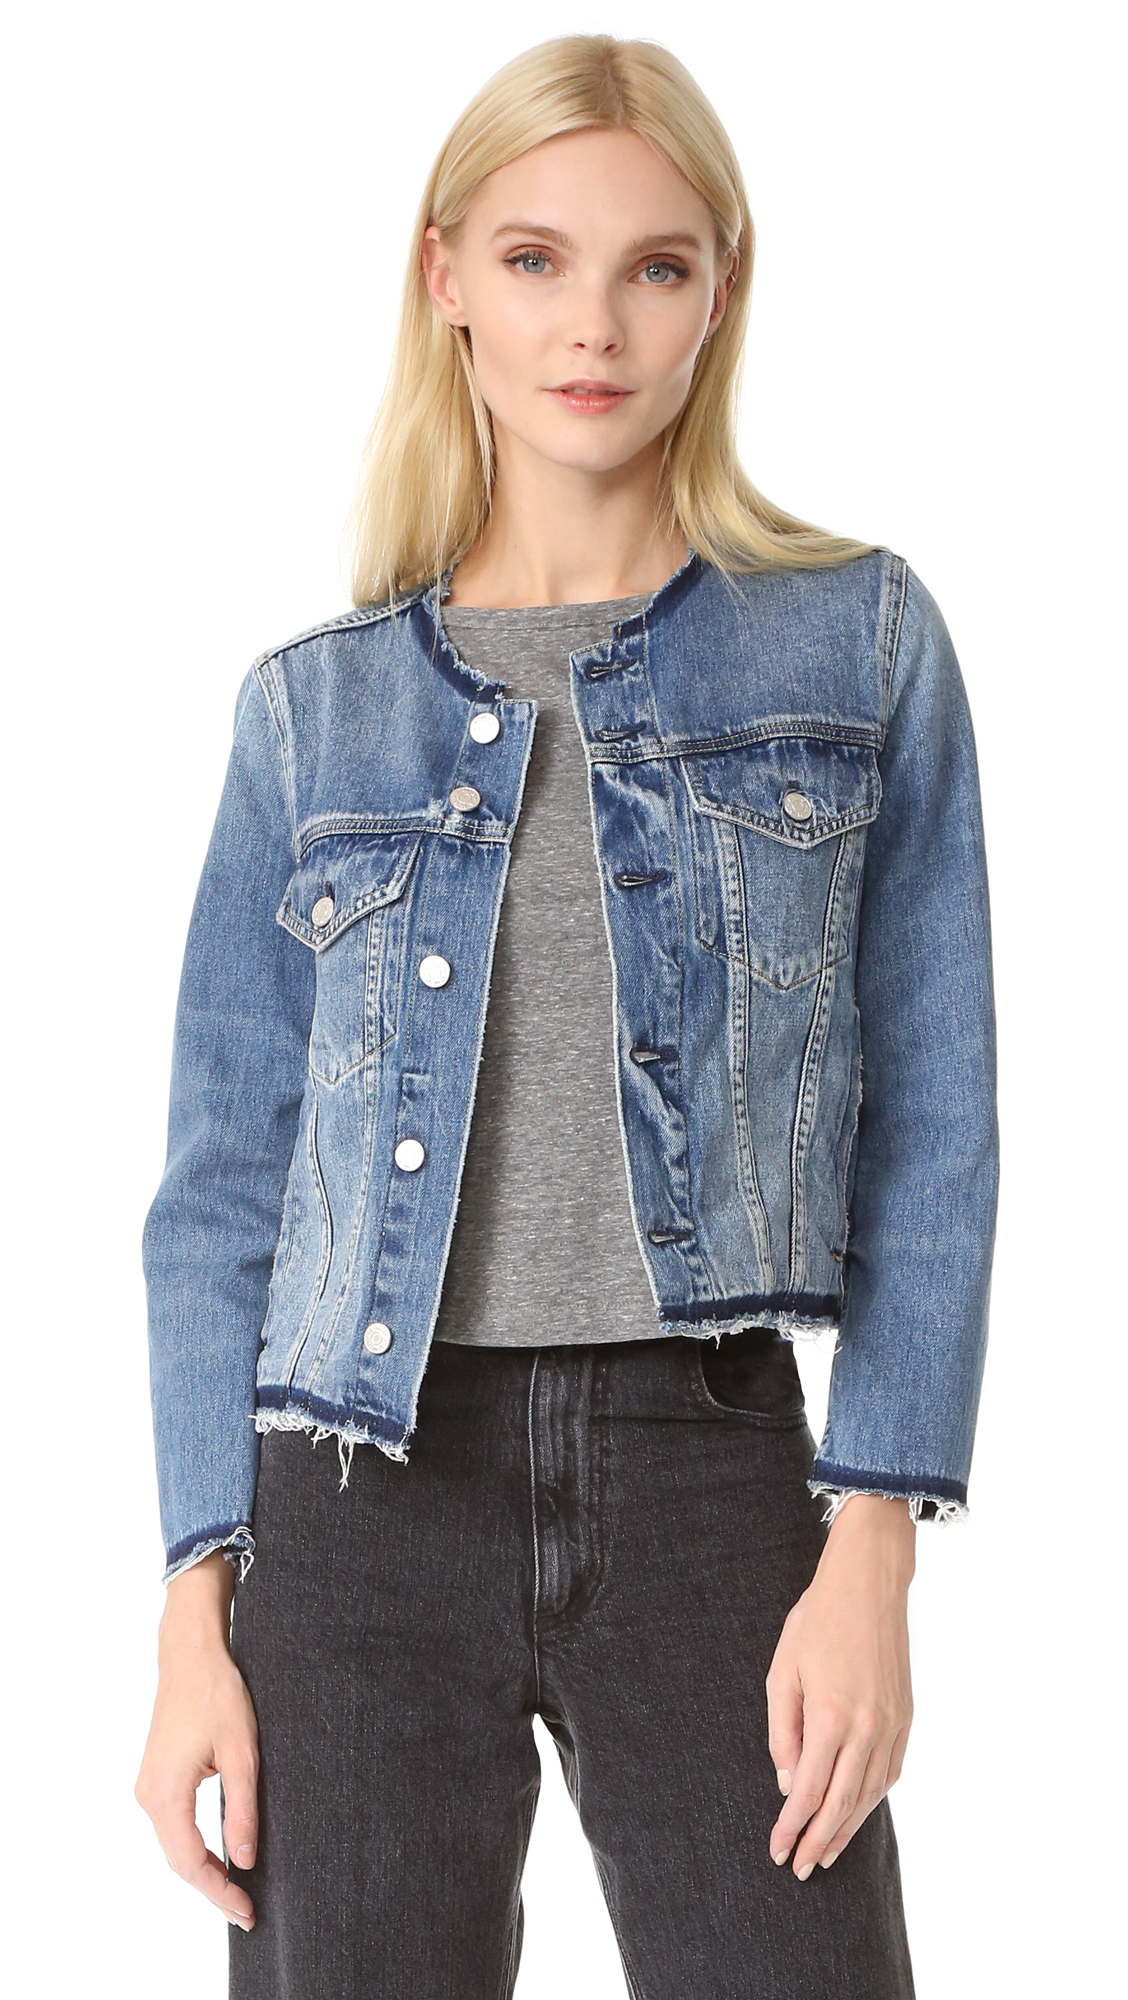 Amo Lola Denim Jacket - Thrift Shop at Shopbop